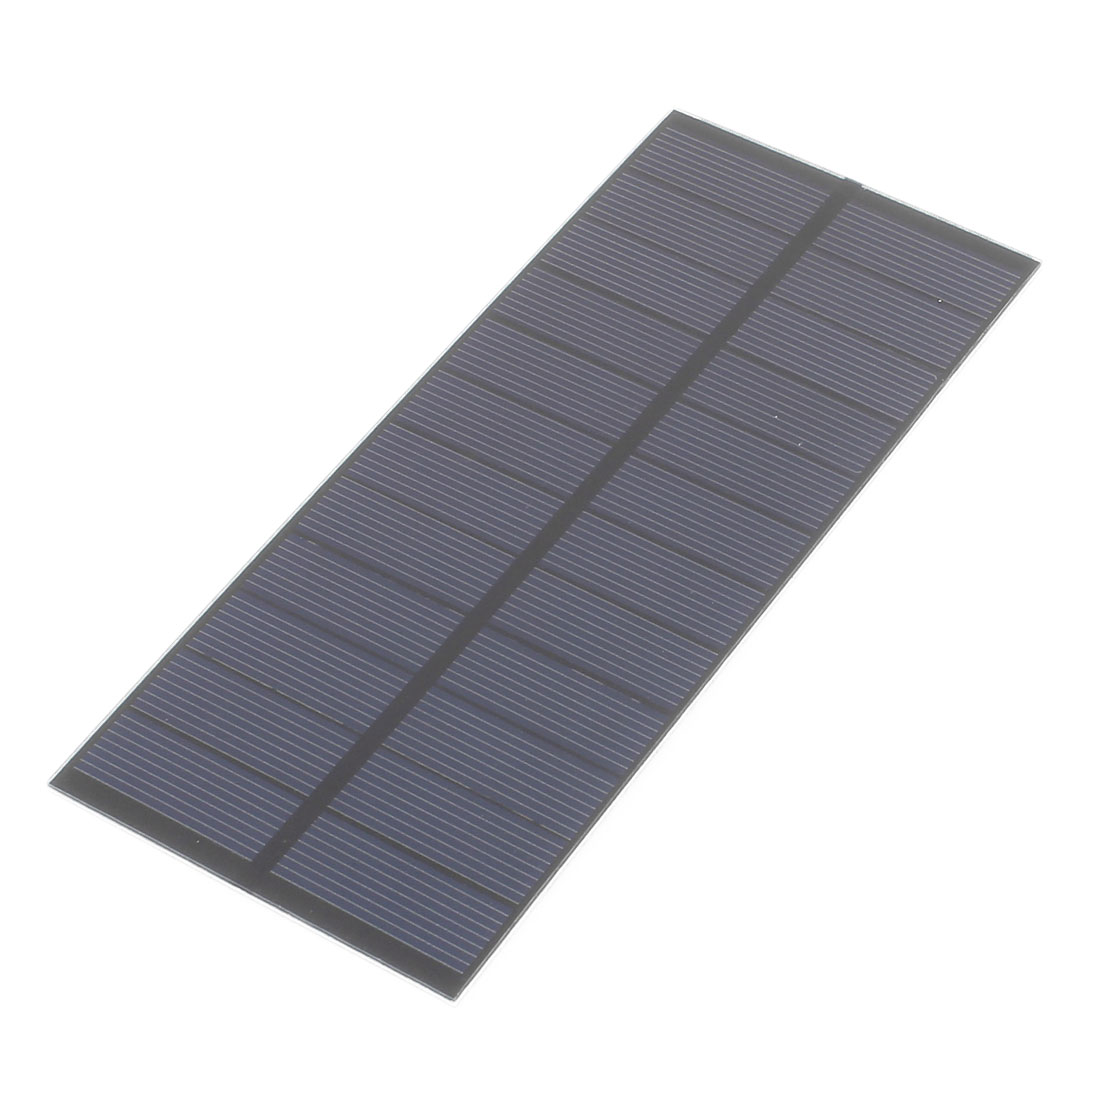 6V 2.3W DIY Polycrystallinesilicon Solar Panel Power Cell Battery Charger 188mm x 78.5mm